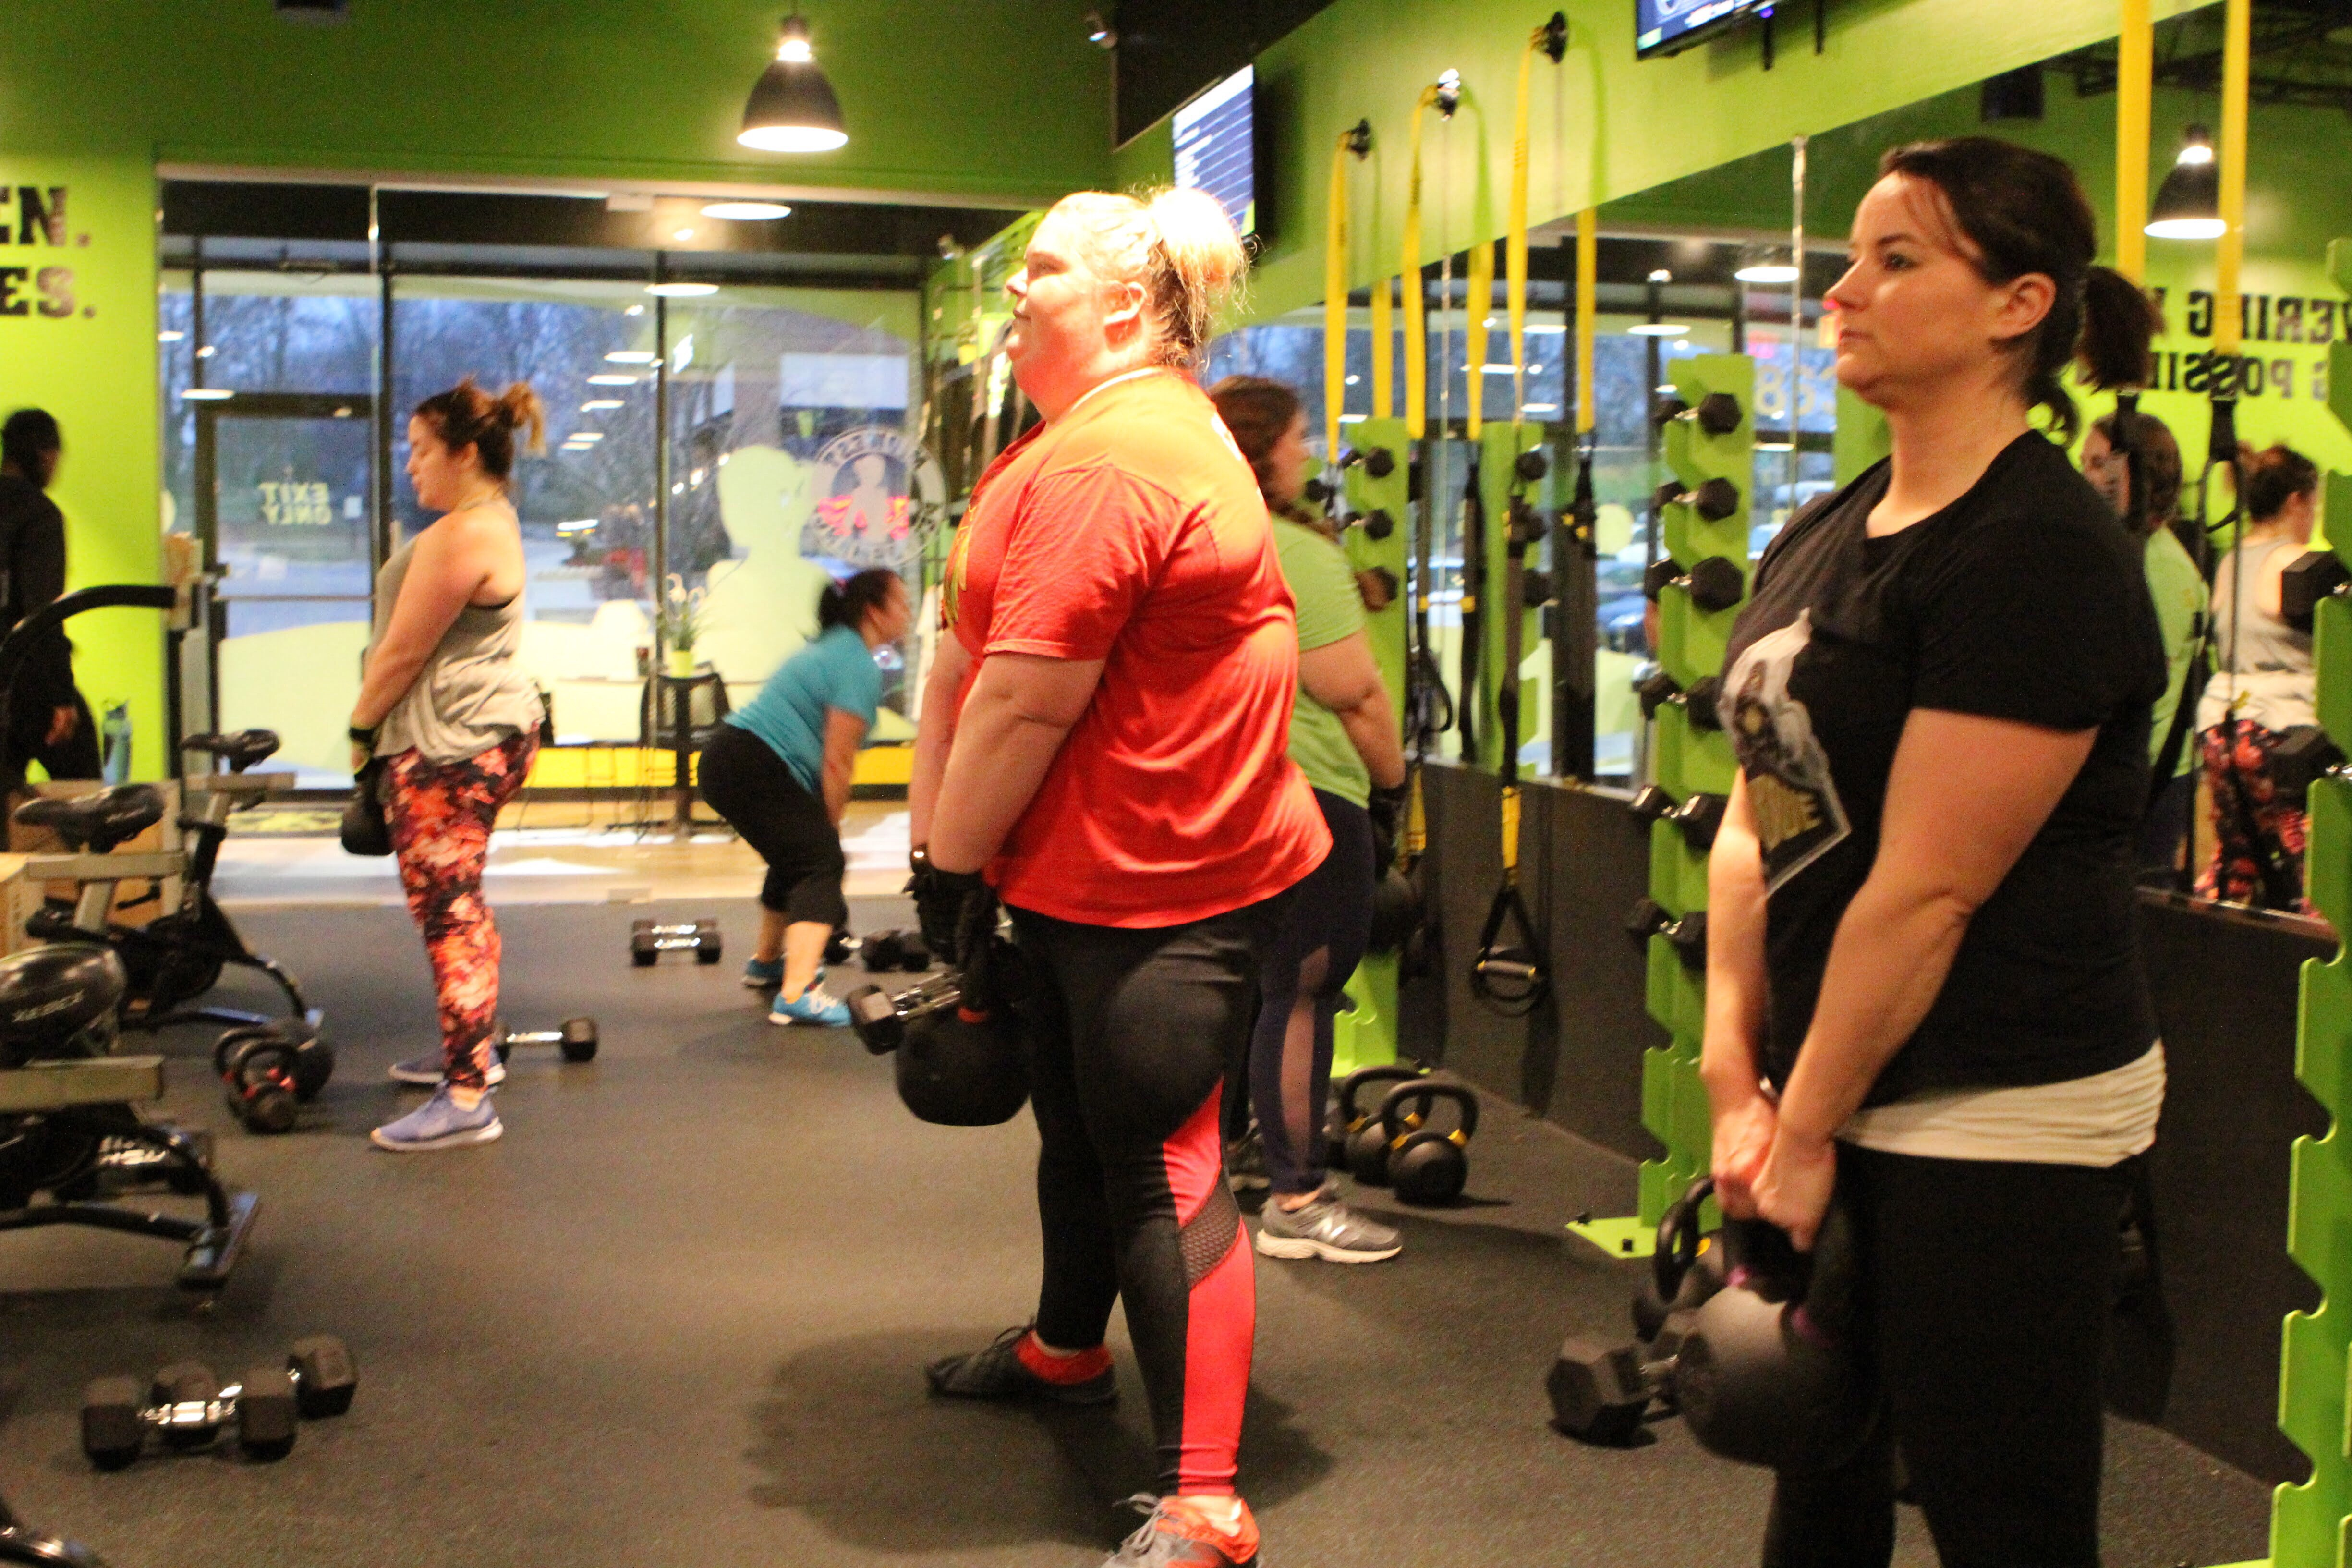 group women watching one woman lifting weights